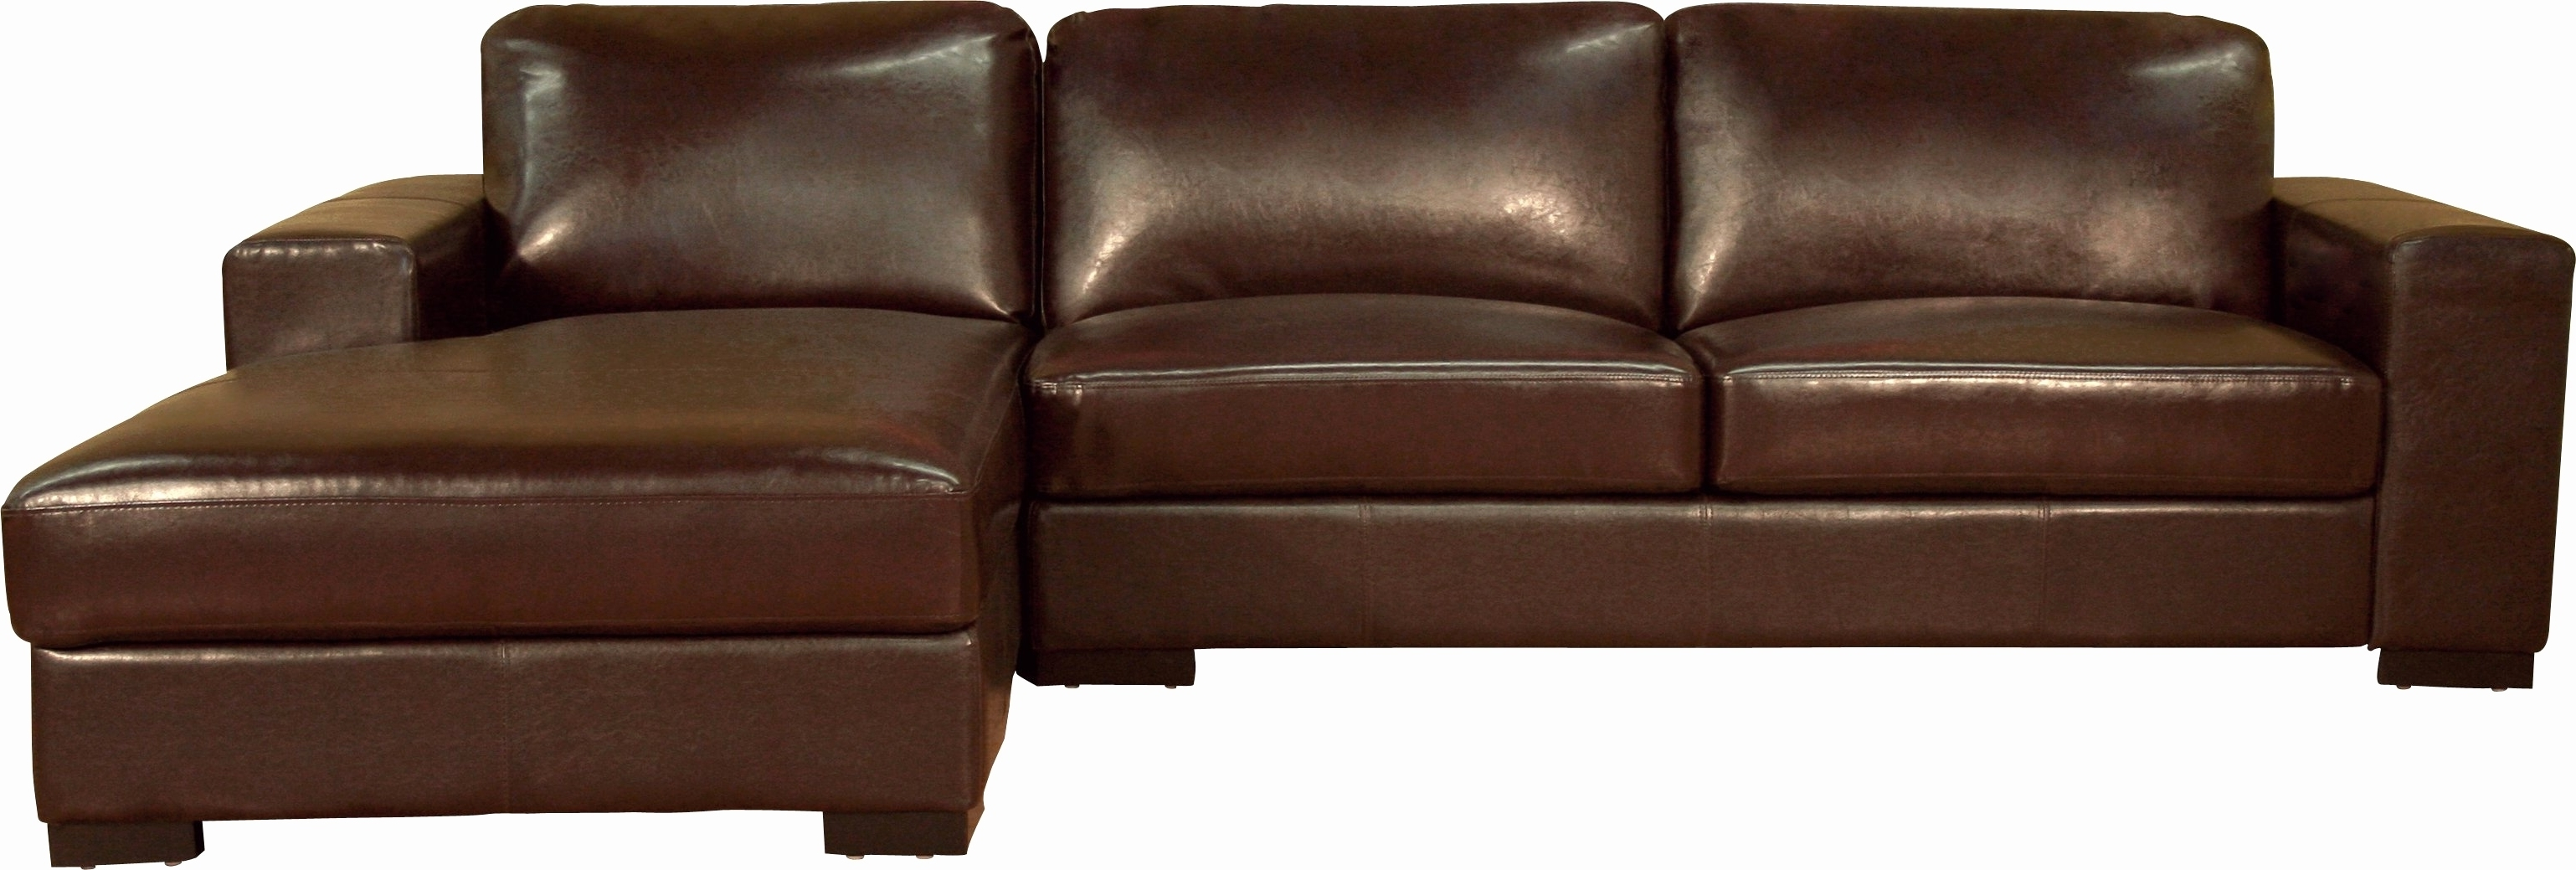 Most Recently Released Leather Lounge Sofas Within New Leather Lounges For Sale 2018 – Couches And Sofas Ideas (View 18 of 20)